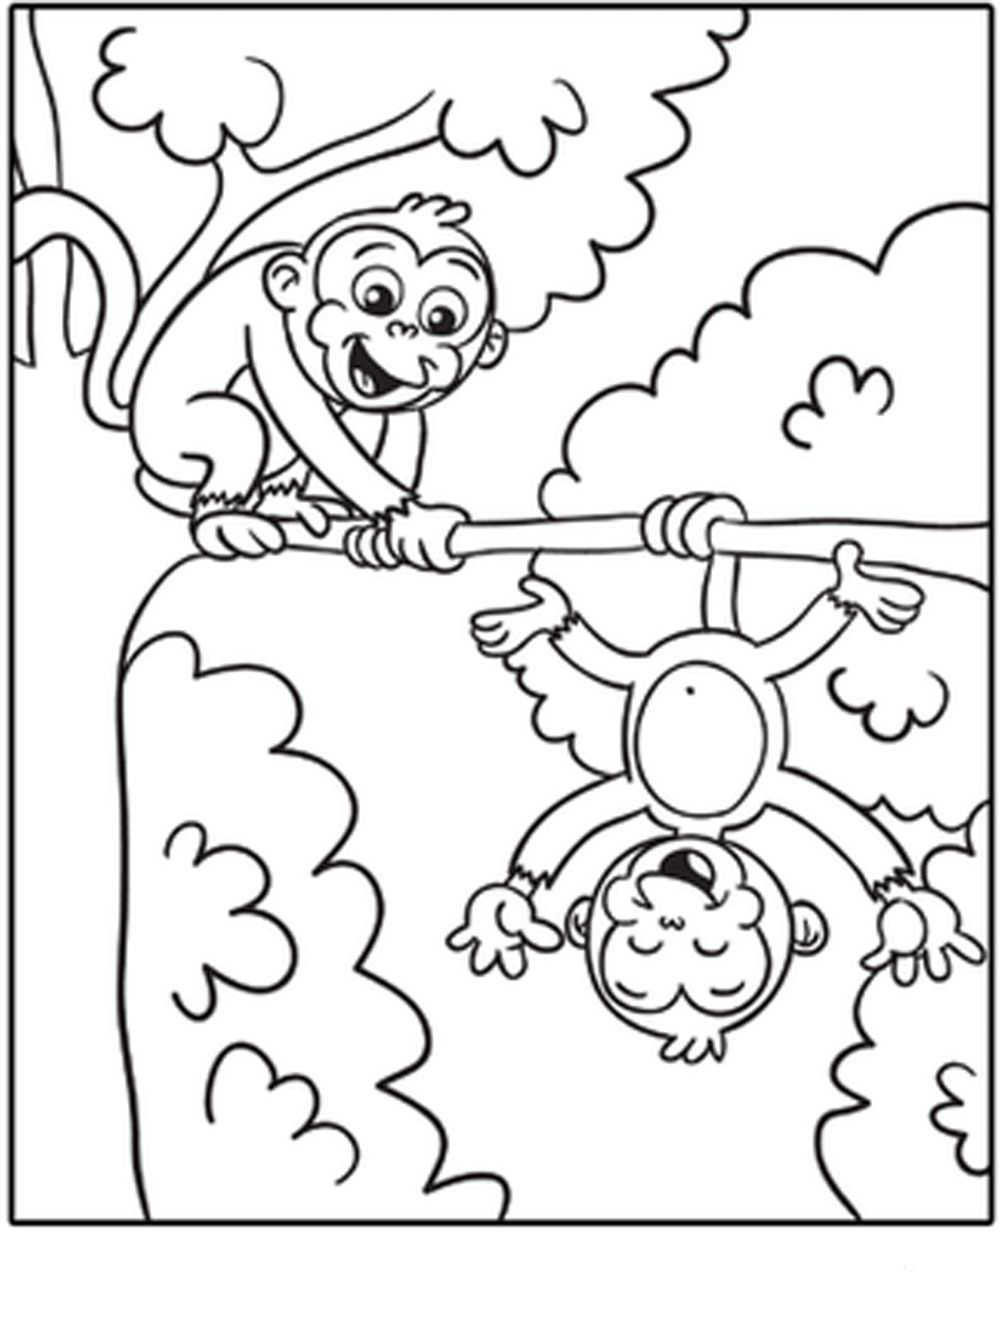 Monkey Printable Coloring Pages 3 #24104 - Free Printable Monkey Coloring Sheets